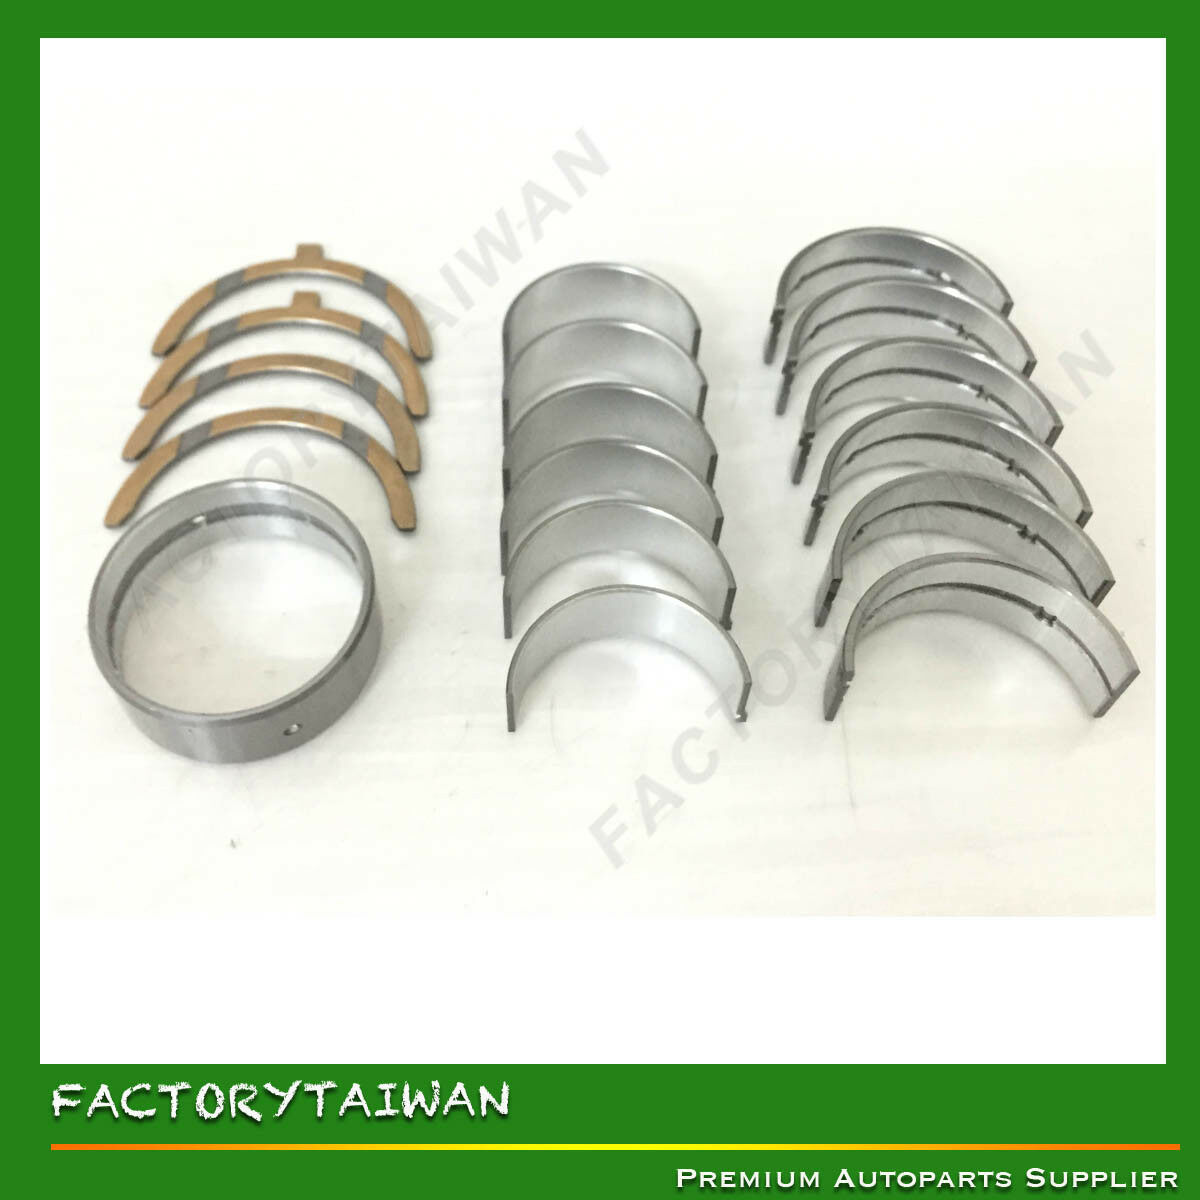 Metal Kit for KUBOTA D905 STD (main bearing+con-rod bearing+thrust washer)